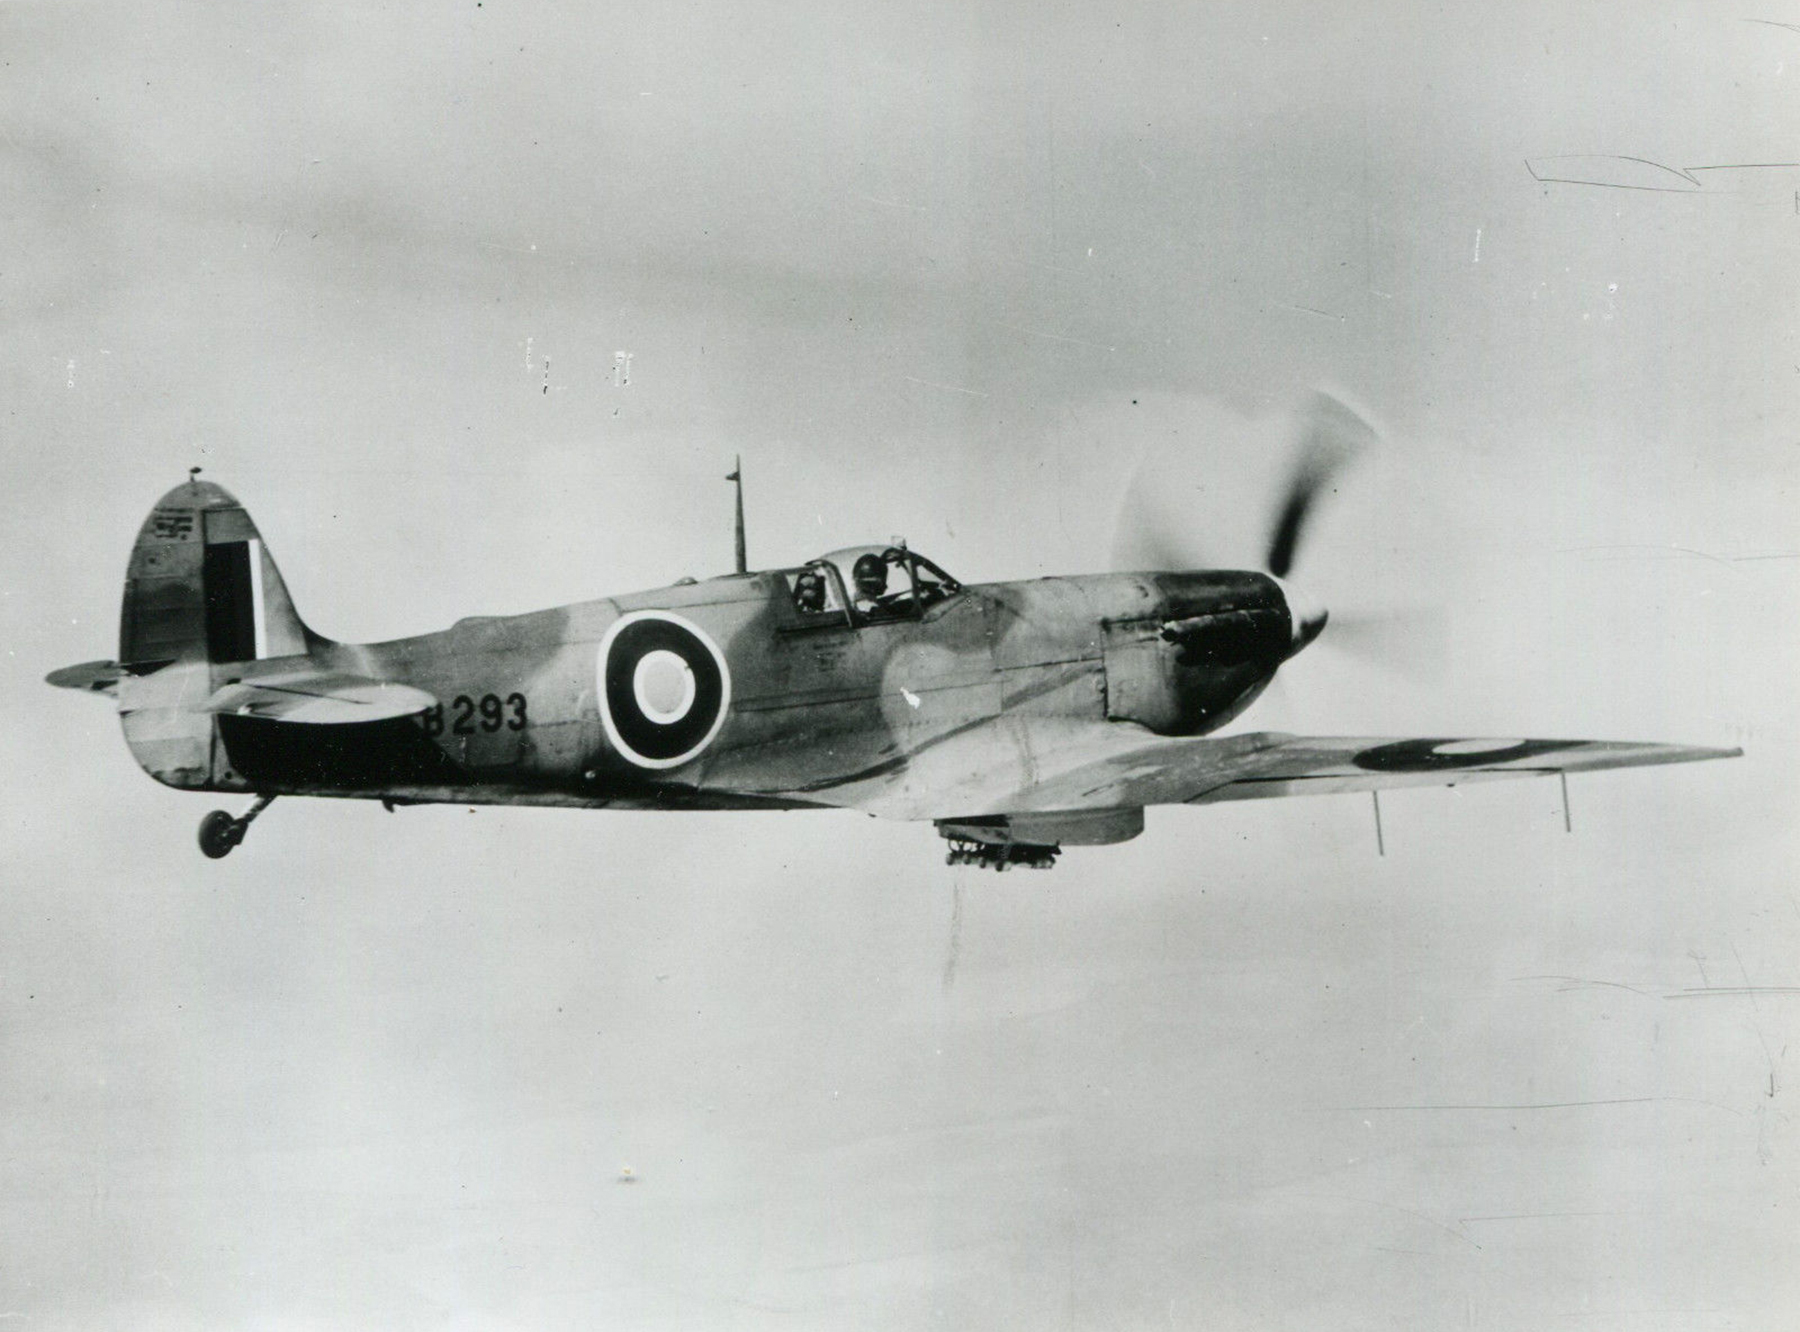 Spitfire 7 Proyotype AB293 01